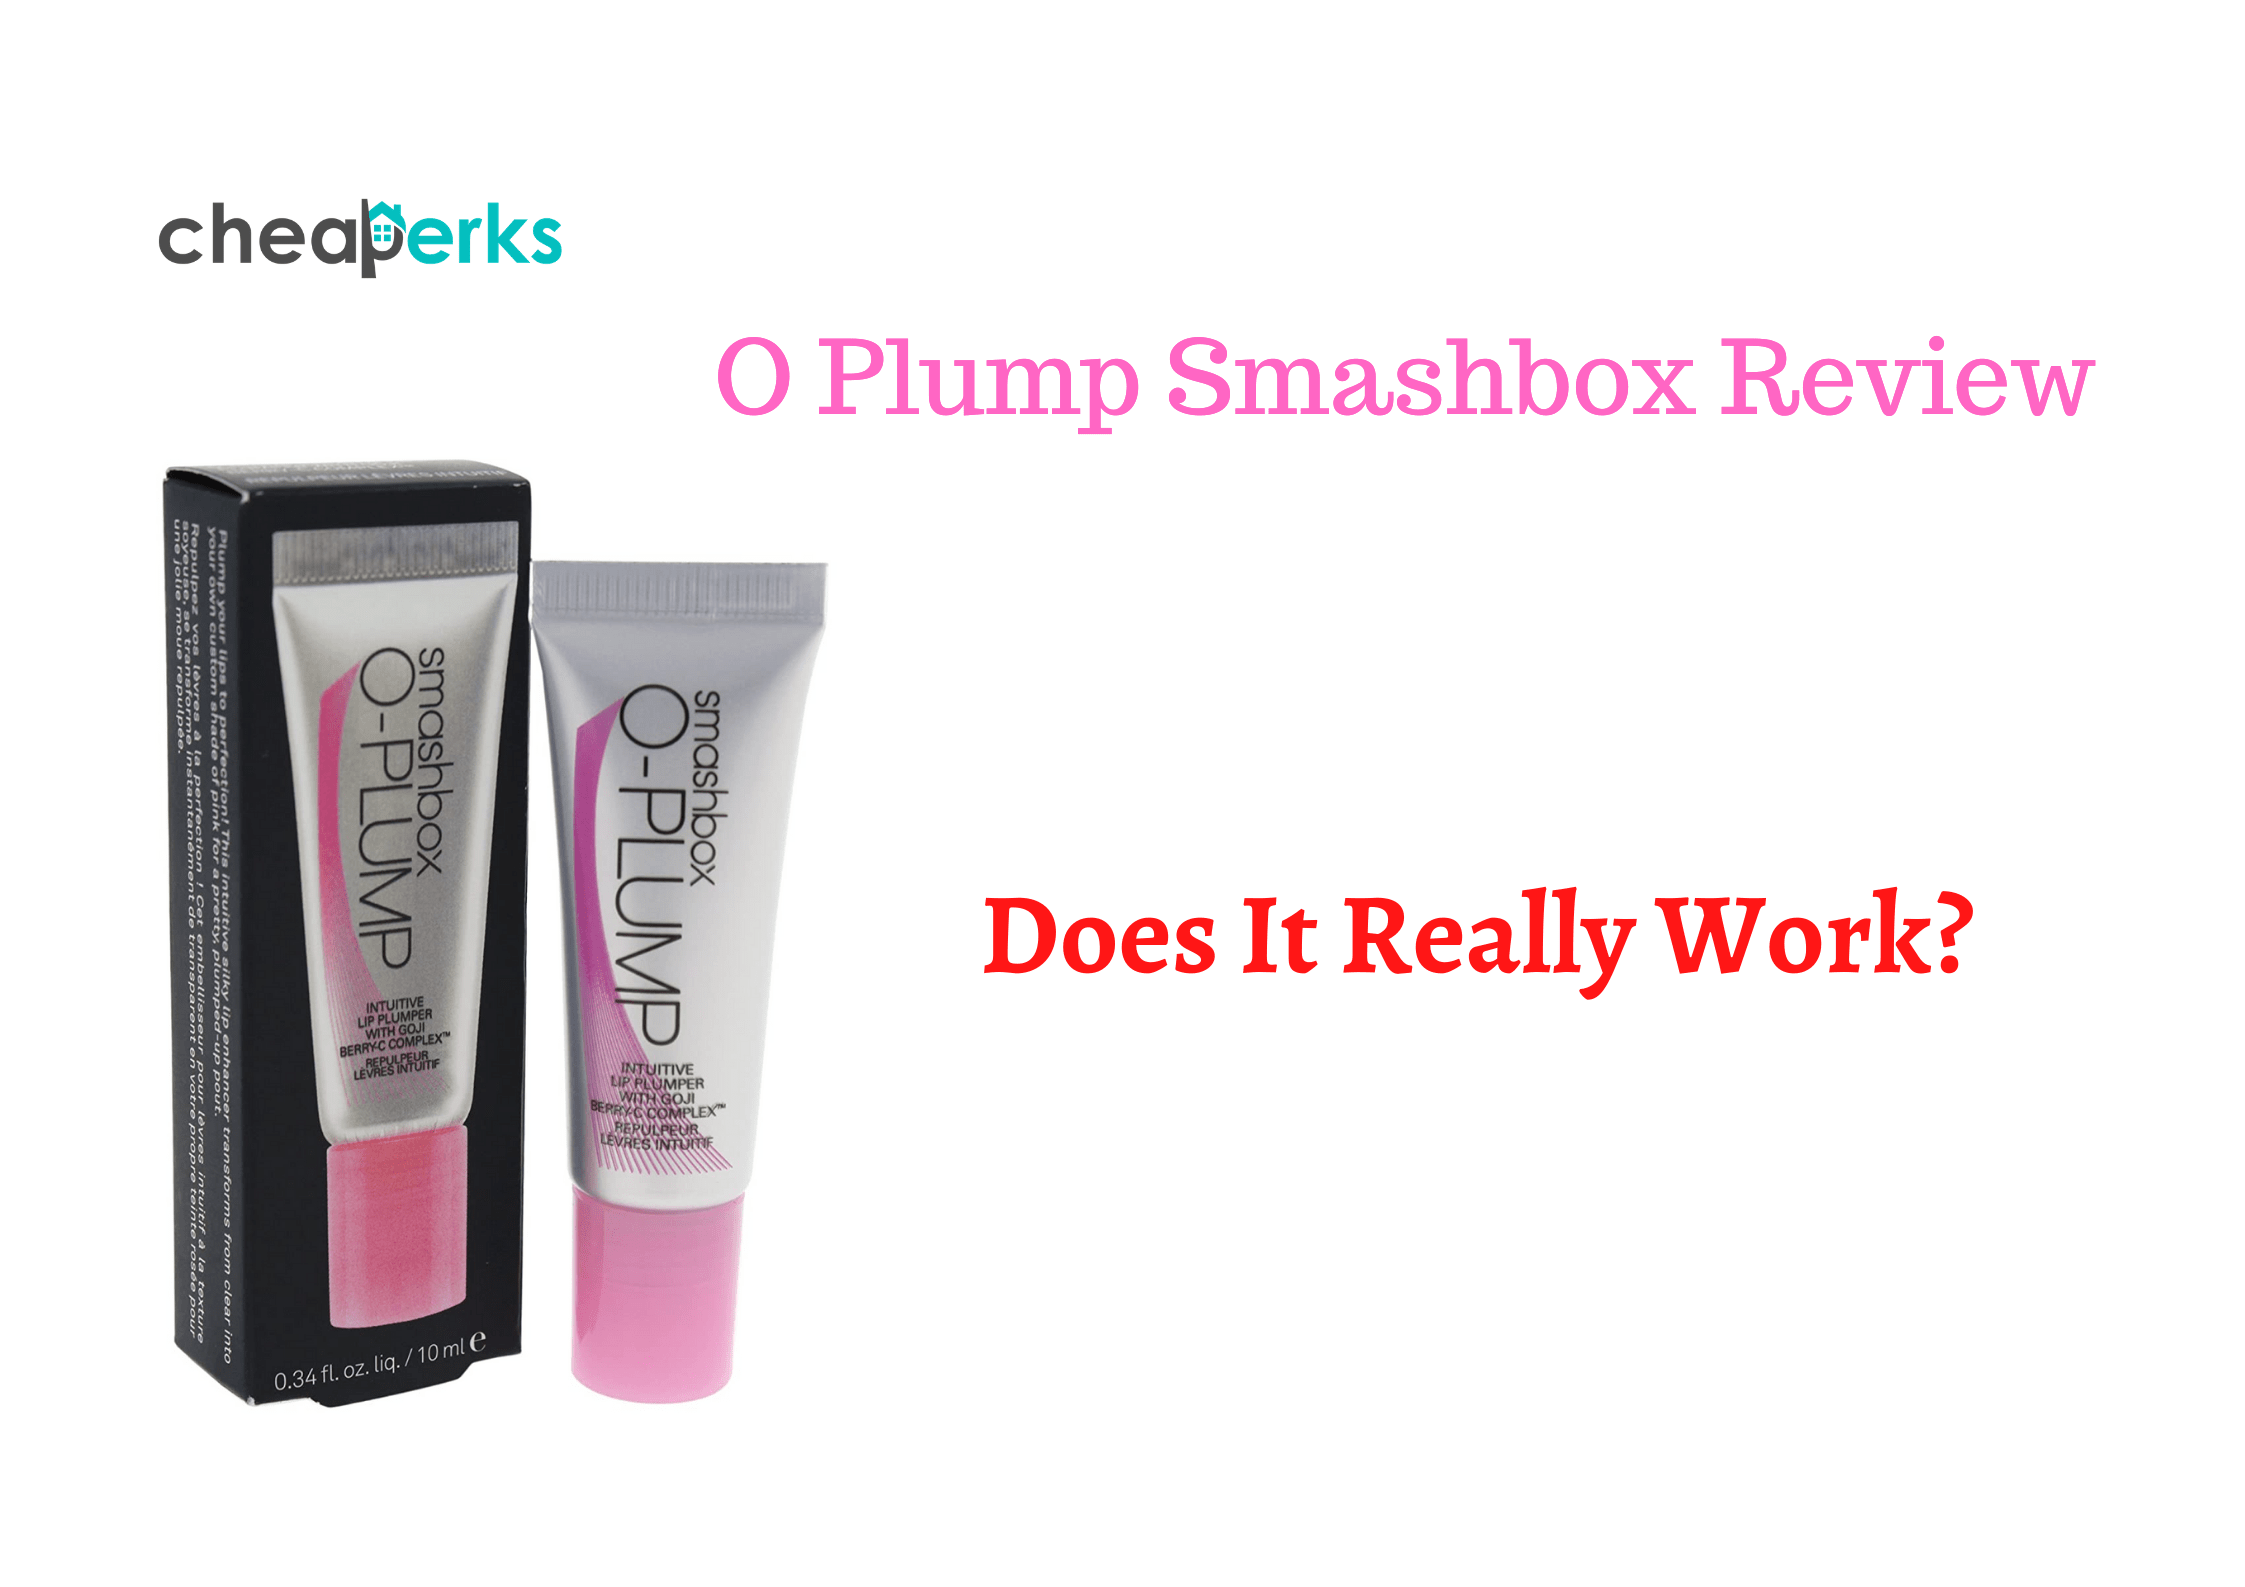 O Plump Smashbox Reviews